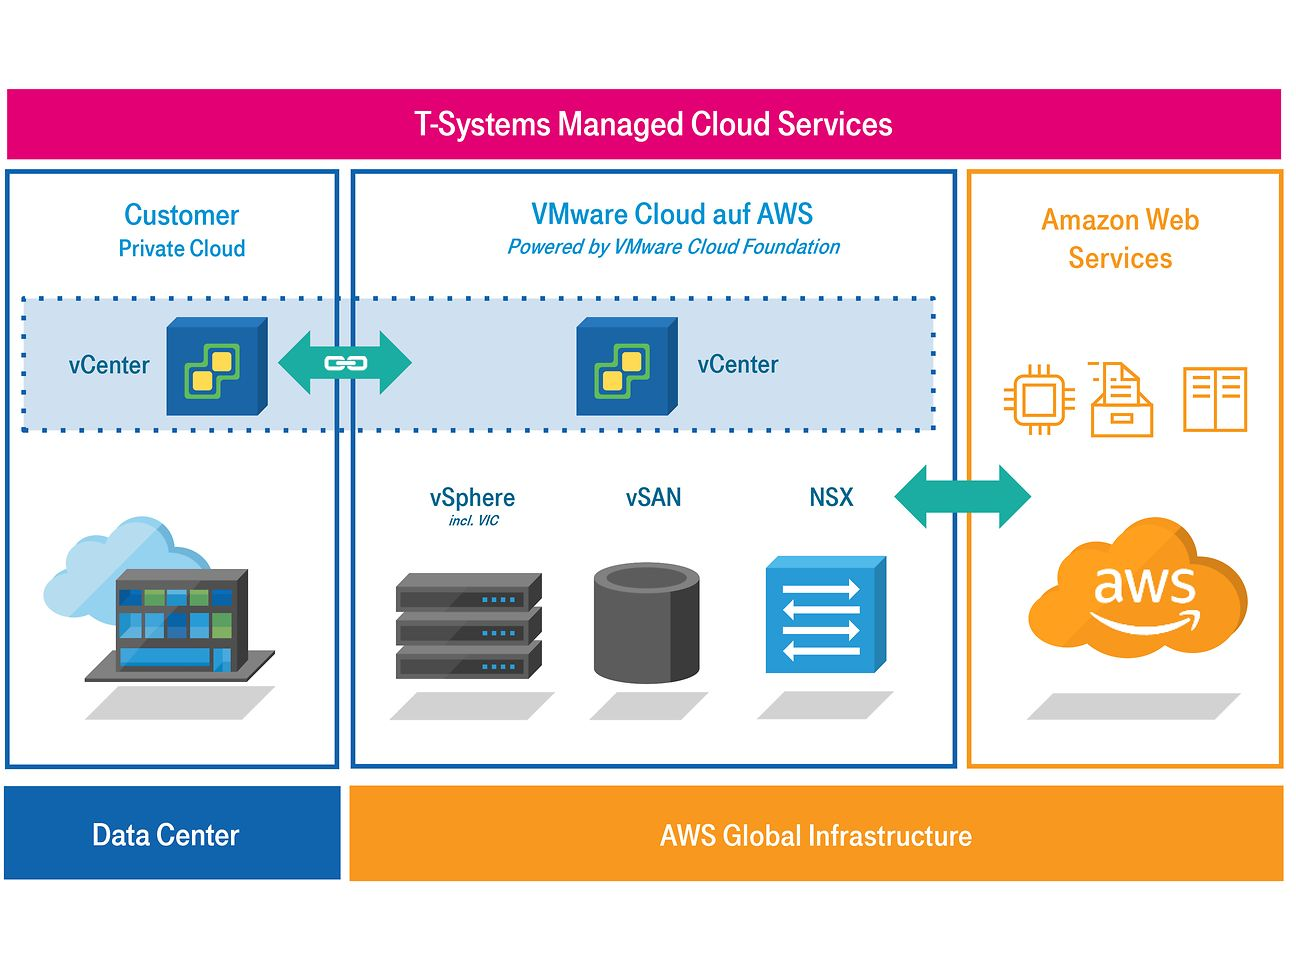 In partnership with VMware: T-Systems builds virtual data